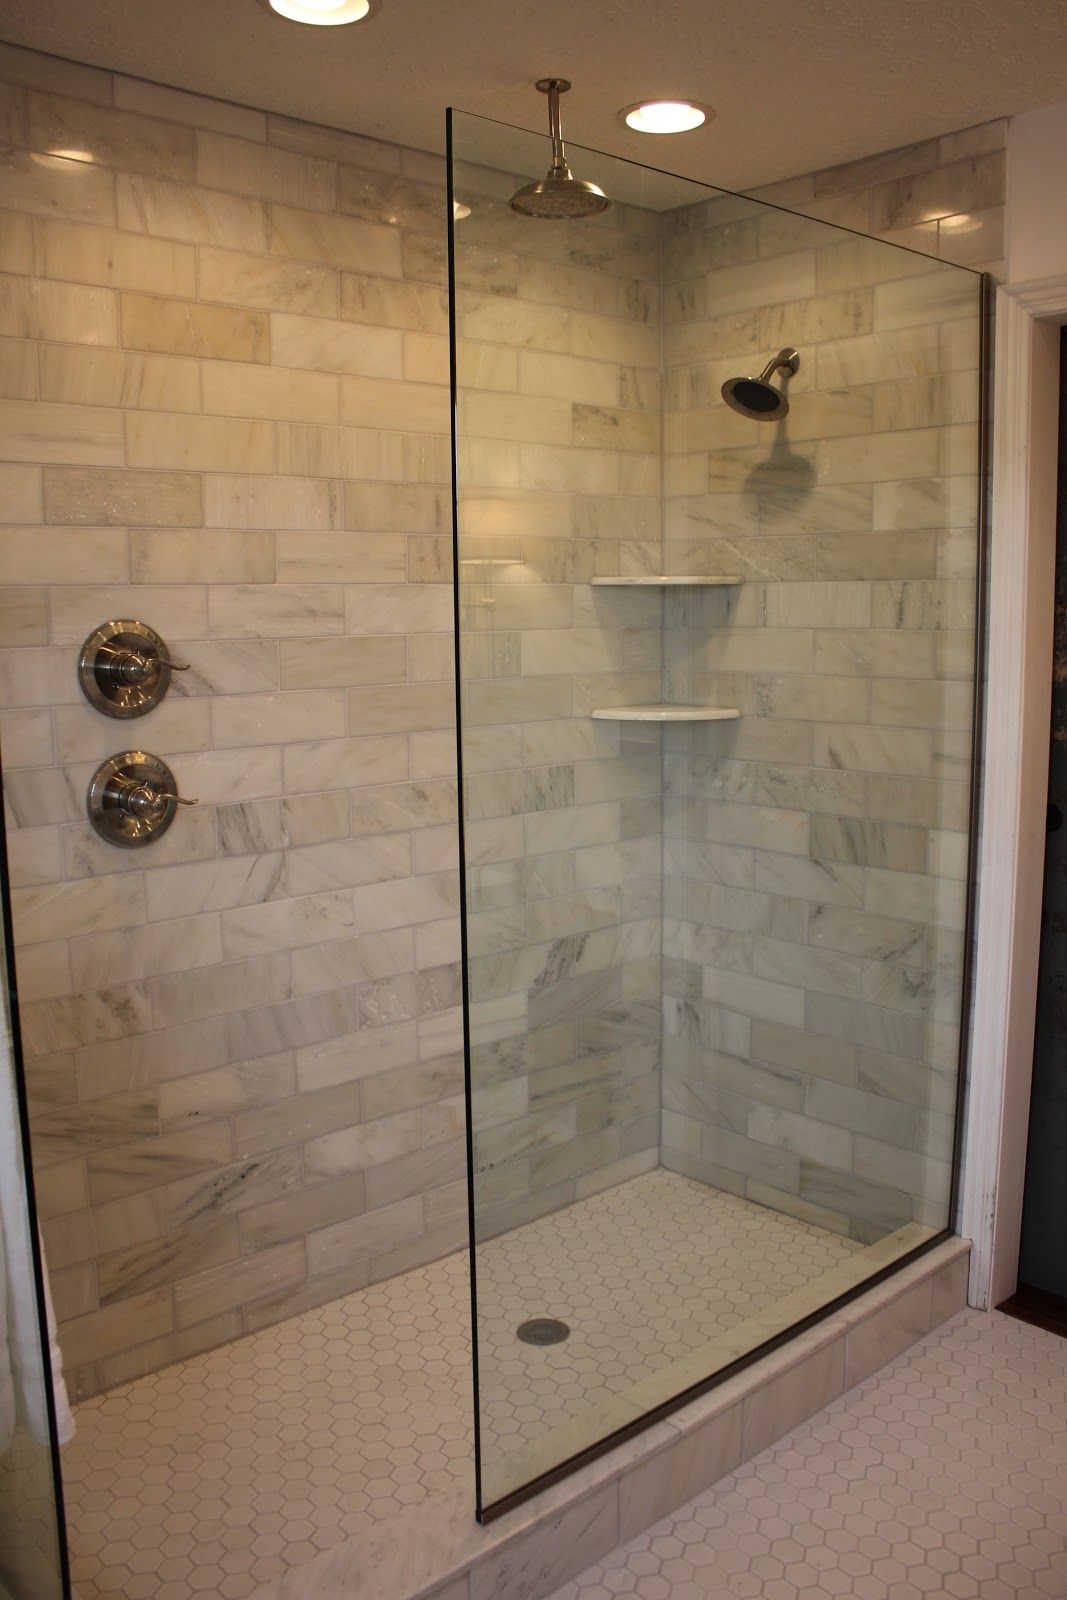 17 Bat Bathroom Ideas On A Budget Tags Small Floor Plans Remodel Cost Layout